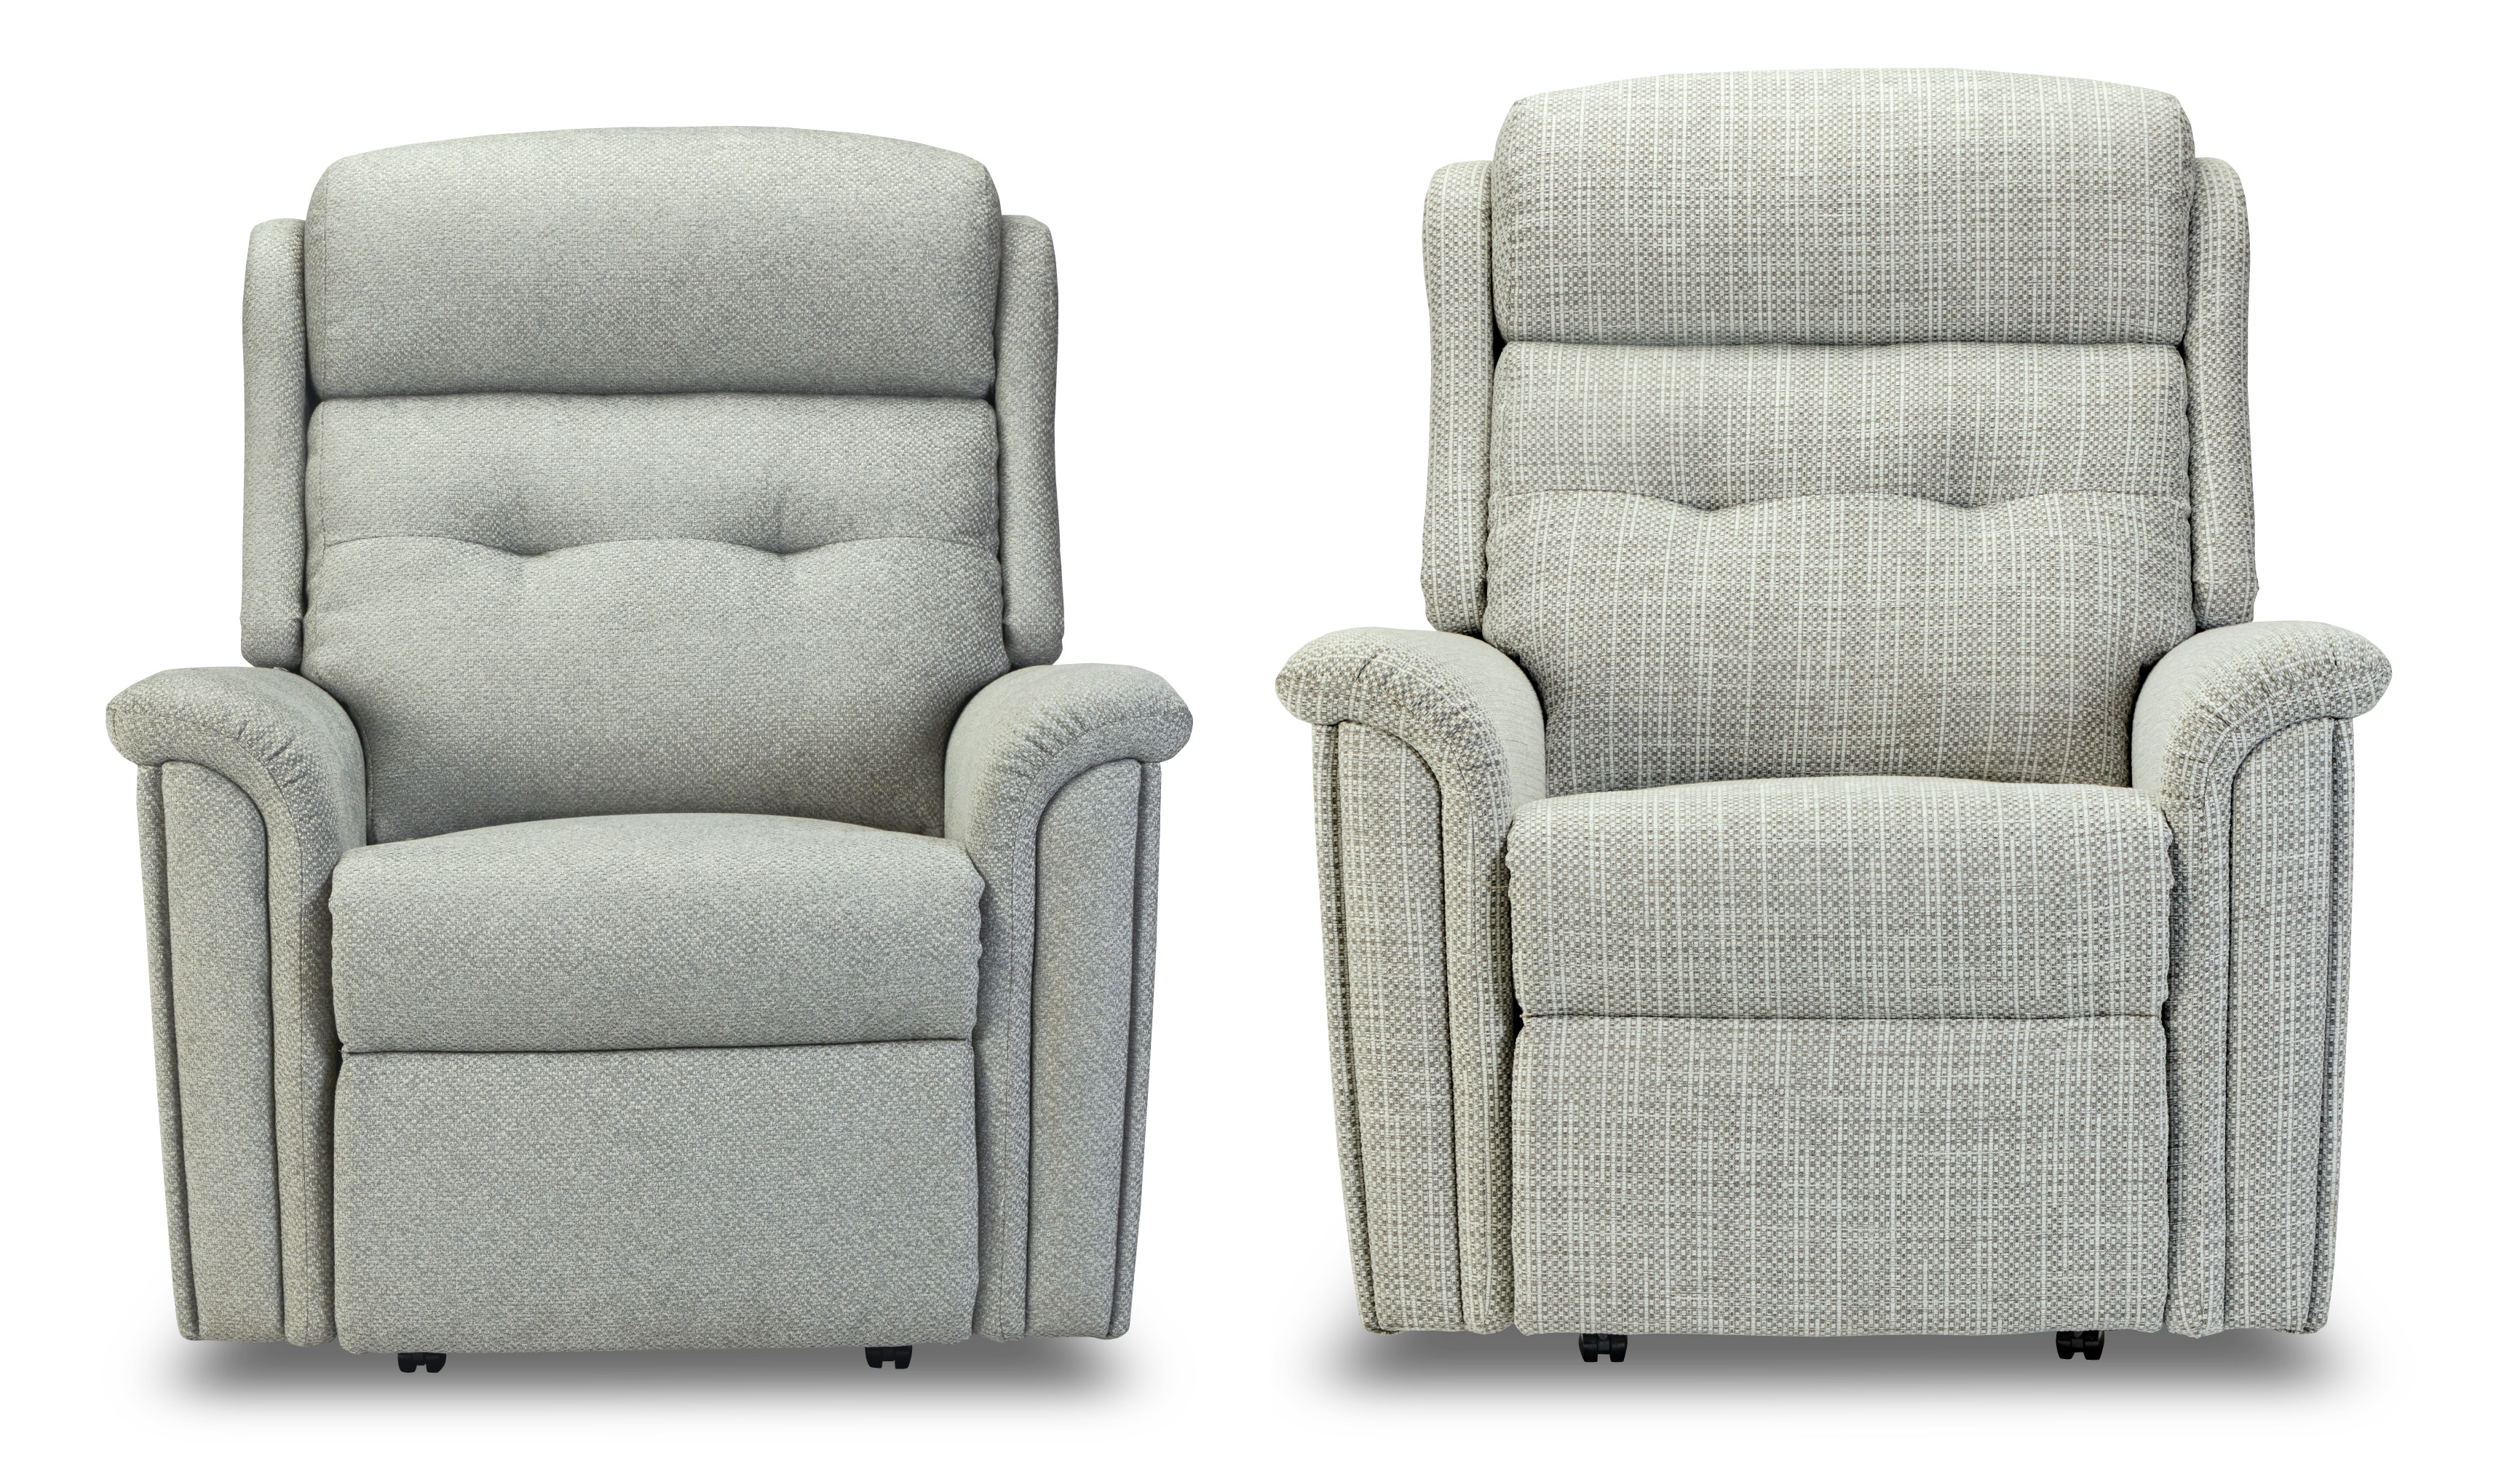 Roma Recliners 2-Sizes pg32 (F)